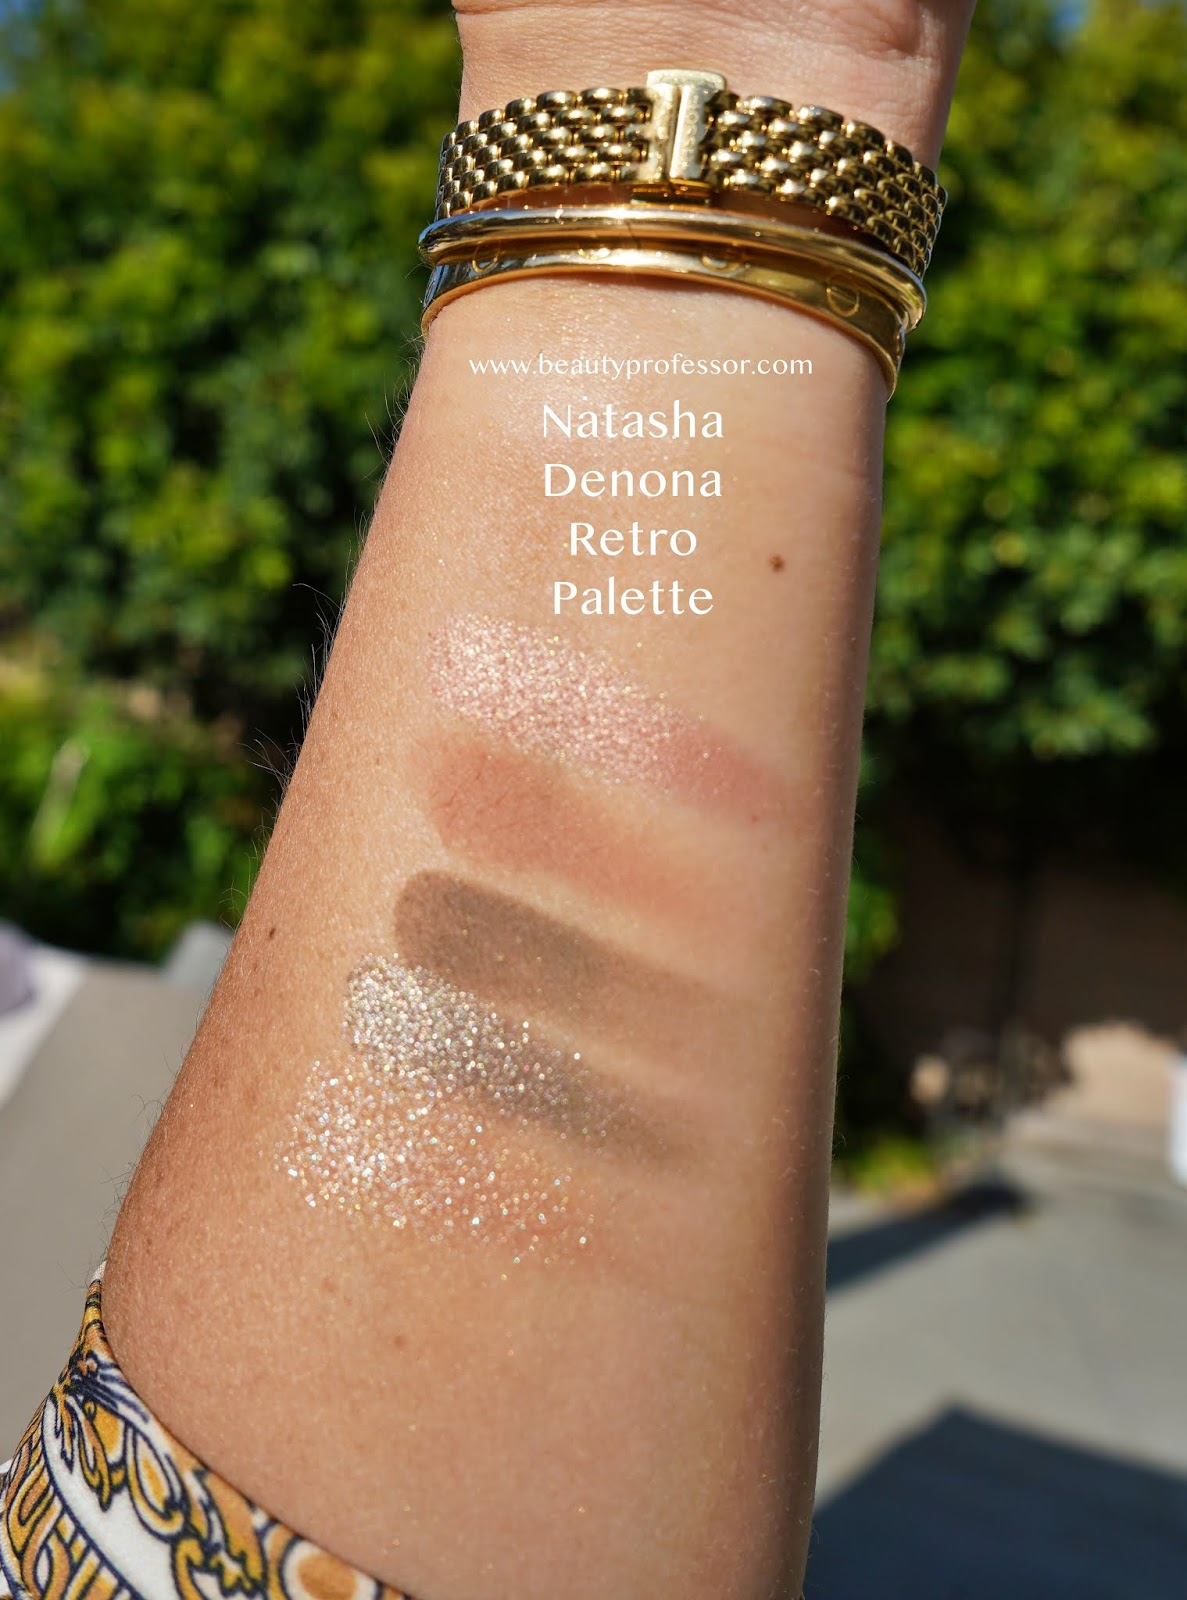 Natasha Denona Mini Retro Eyeshadow Palette swatches